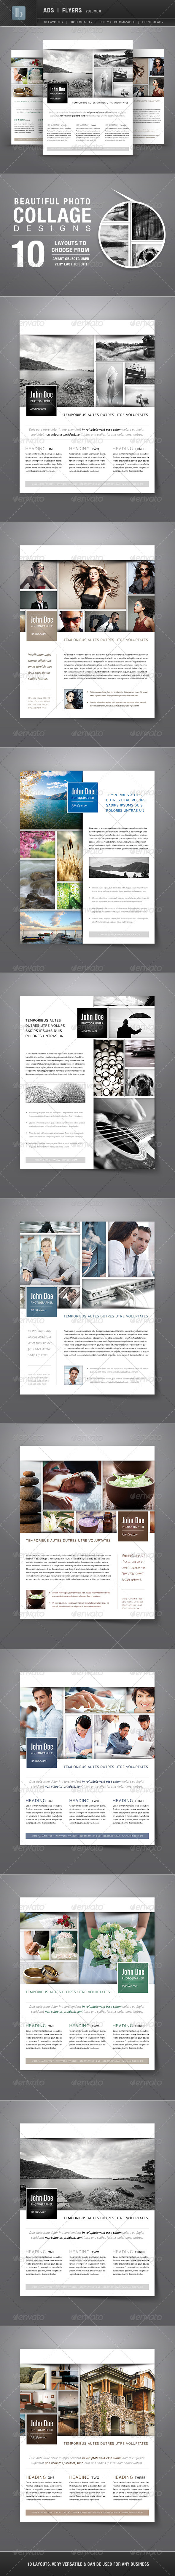 GraphicRiver Ads Business Flyers Volume 6 2397787